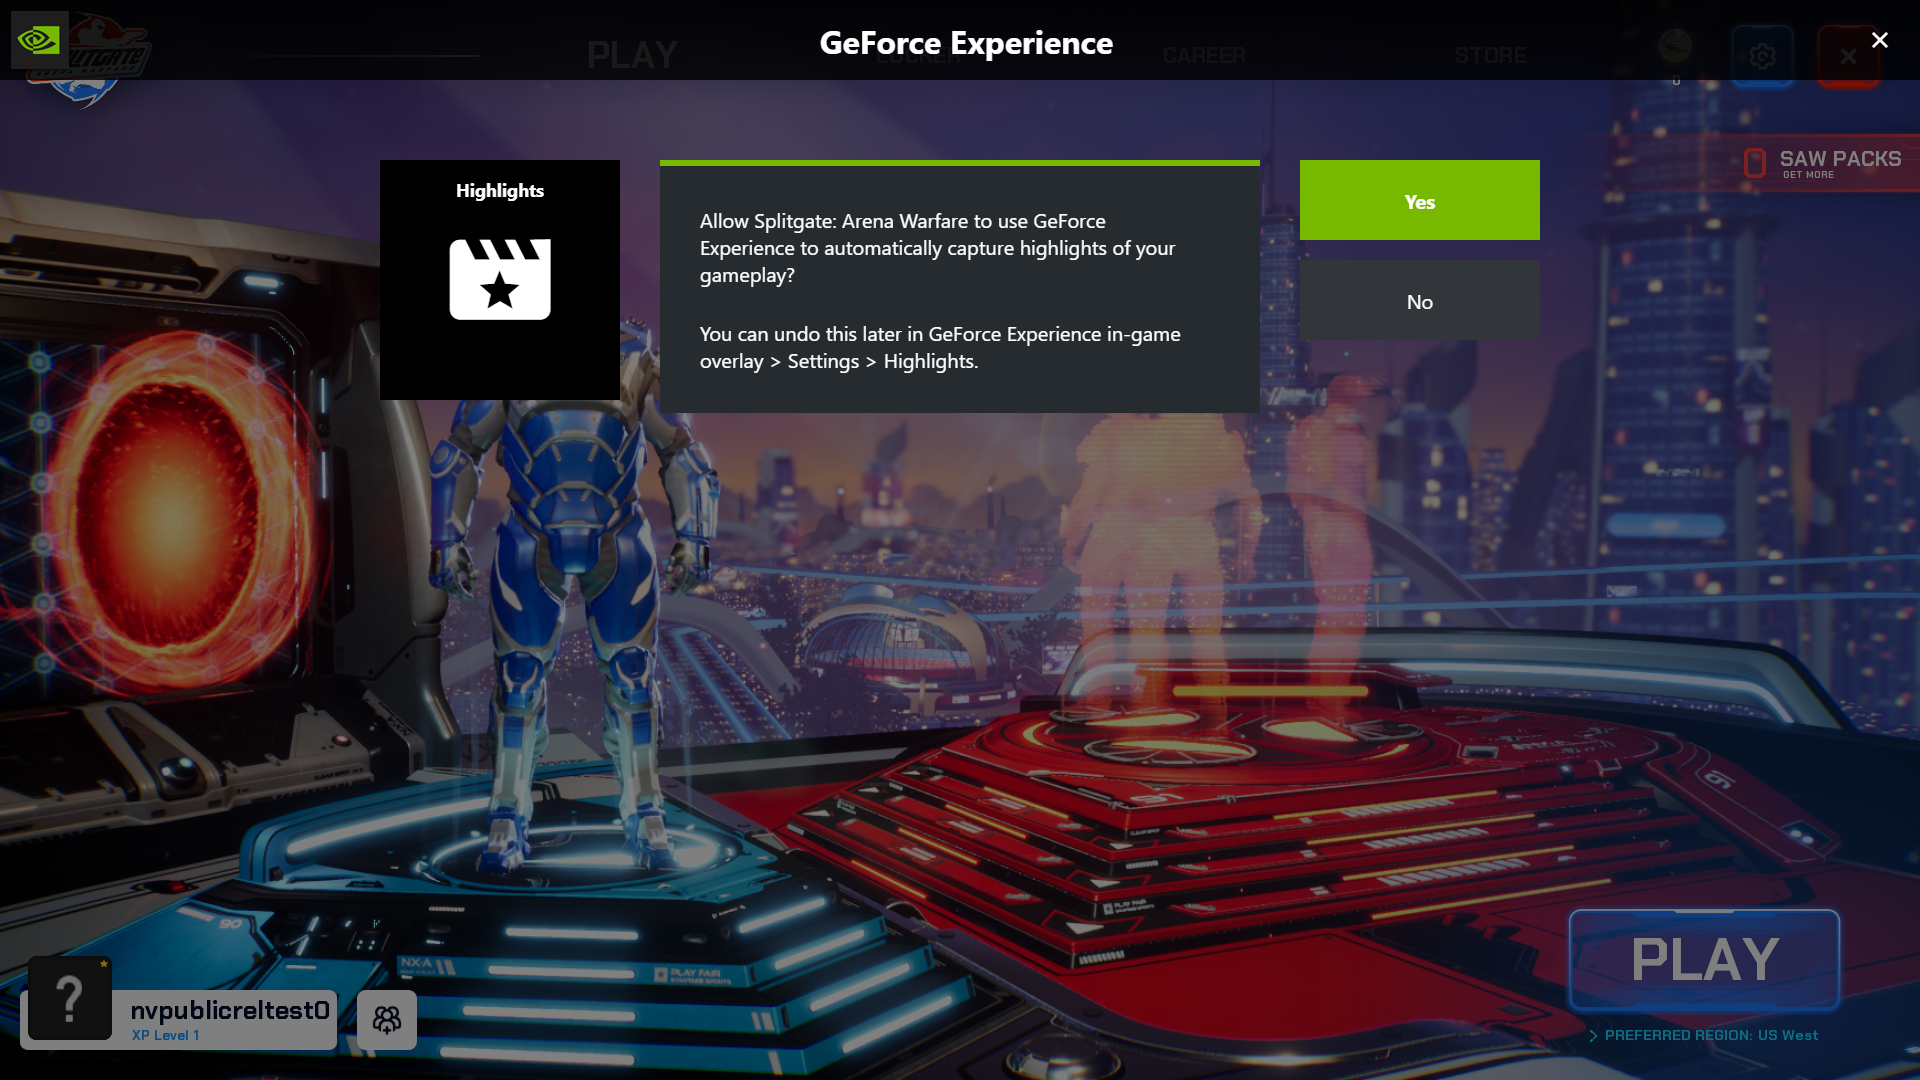 Splitgate: Arena Warfare Adds NVIDIA Highlights As Part Of